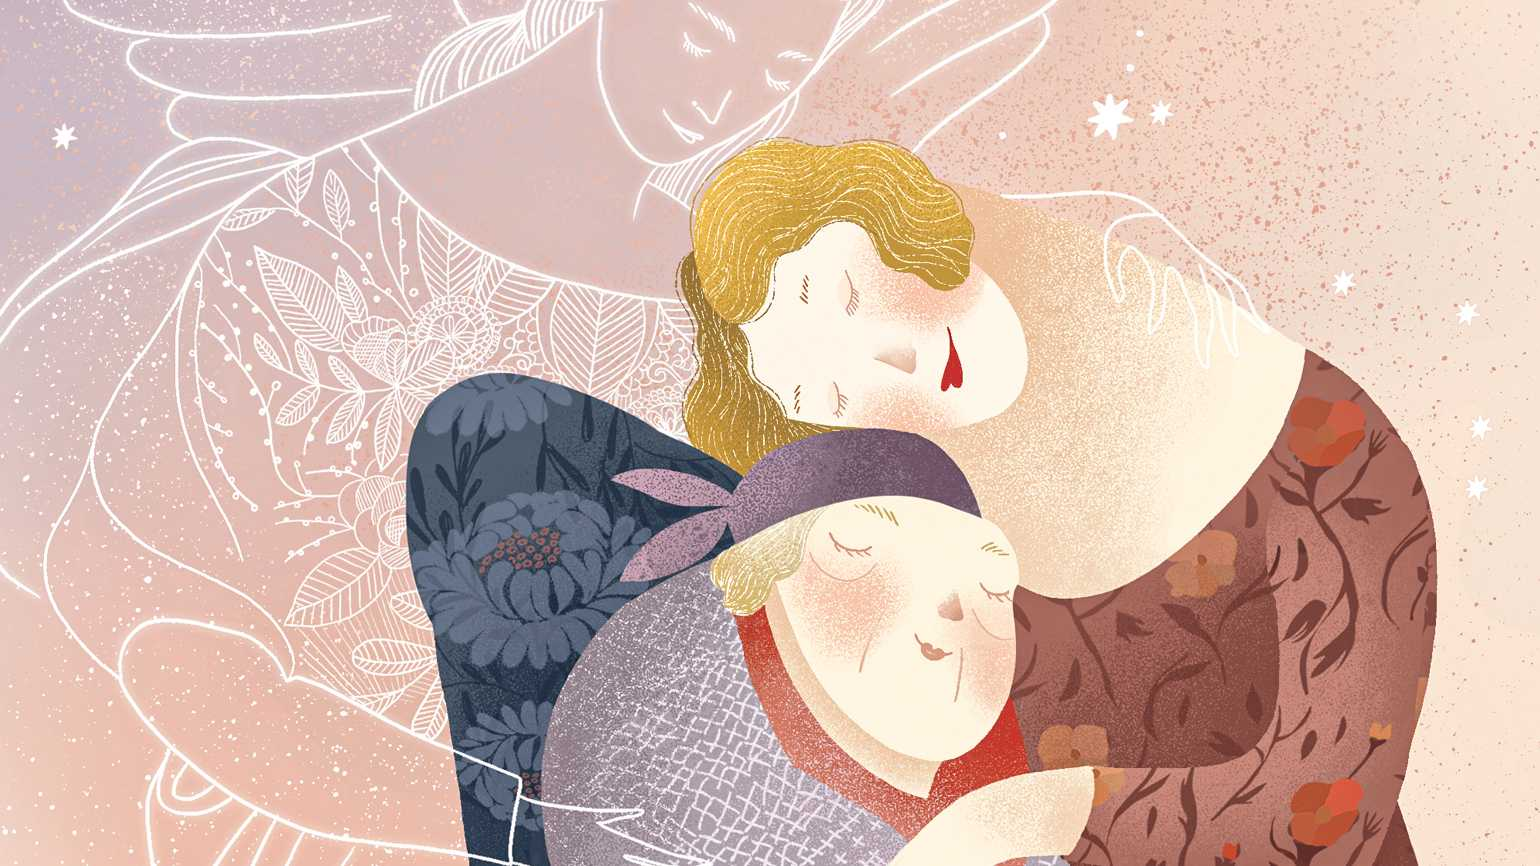 An illsutration of an angels embracing a mother and daughter; Illustration by Amalia Restrepo